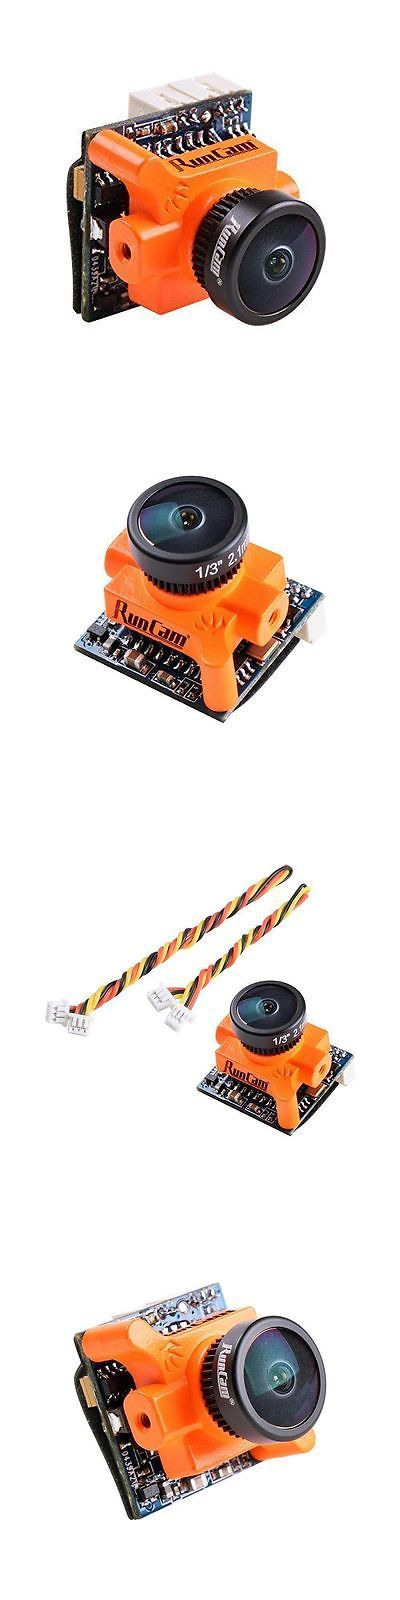 Flight Recorders and Telemetry 183470: Runcam Micro Swift 160 Degree 2.1Mm Ccd 600Tvl Ntsc Fpv Camera Micro Drone -> BUY IT NOW ONLY: $31.99 on eBay!